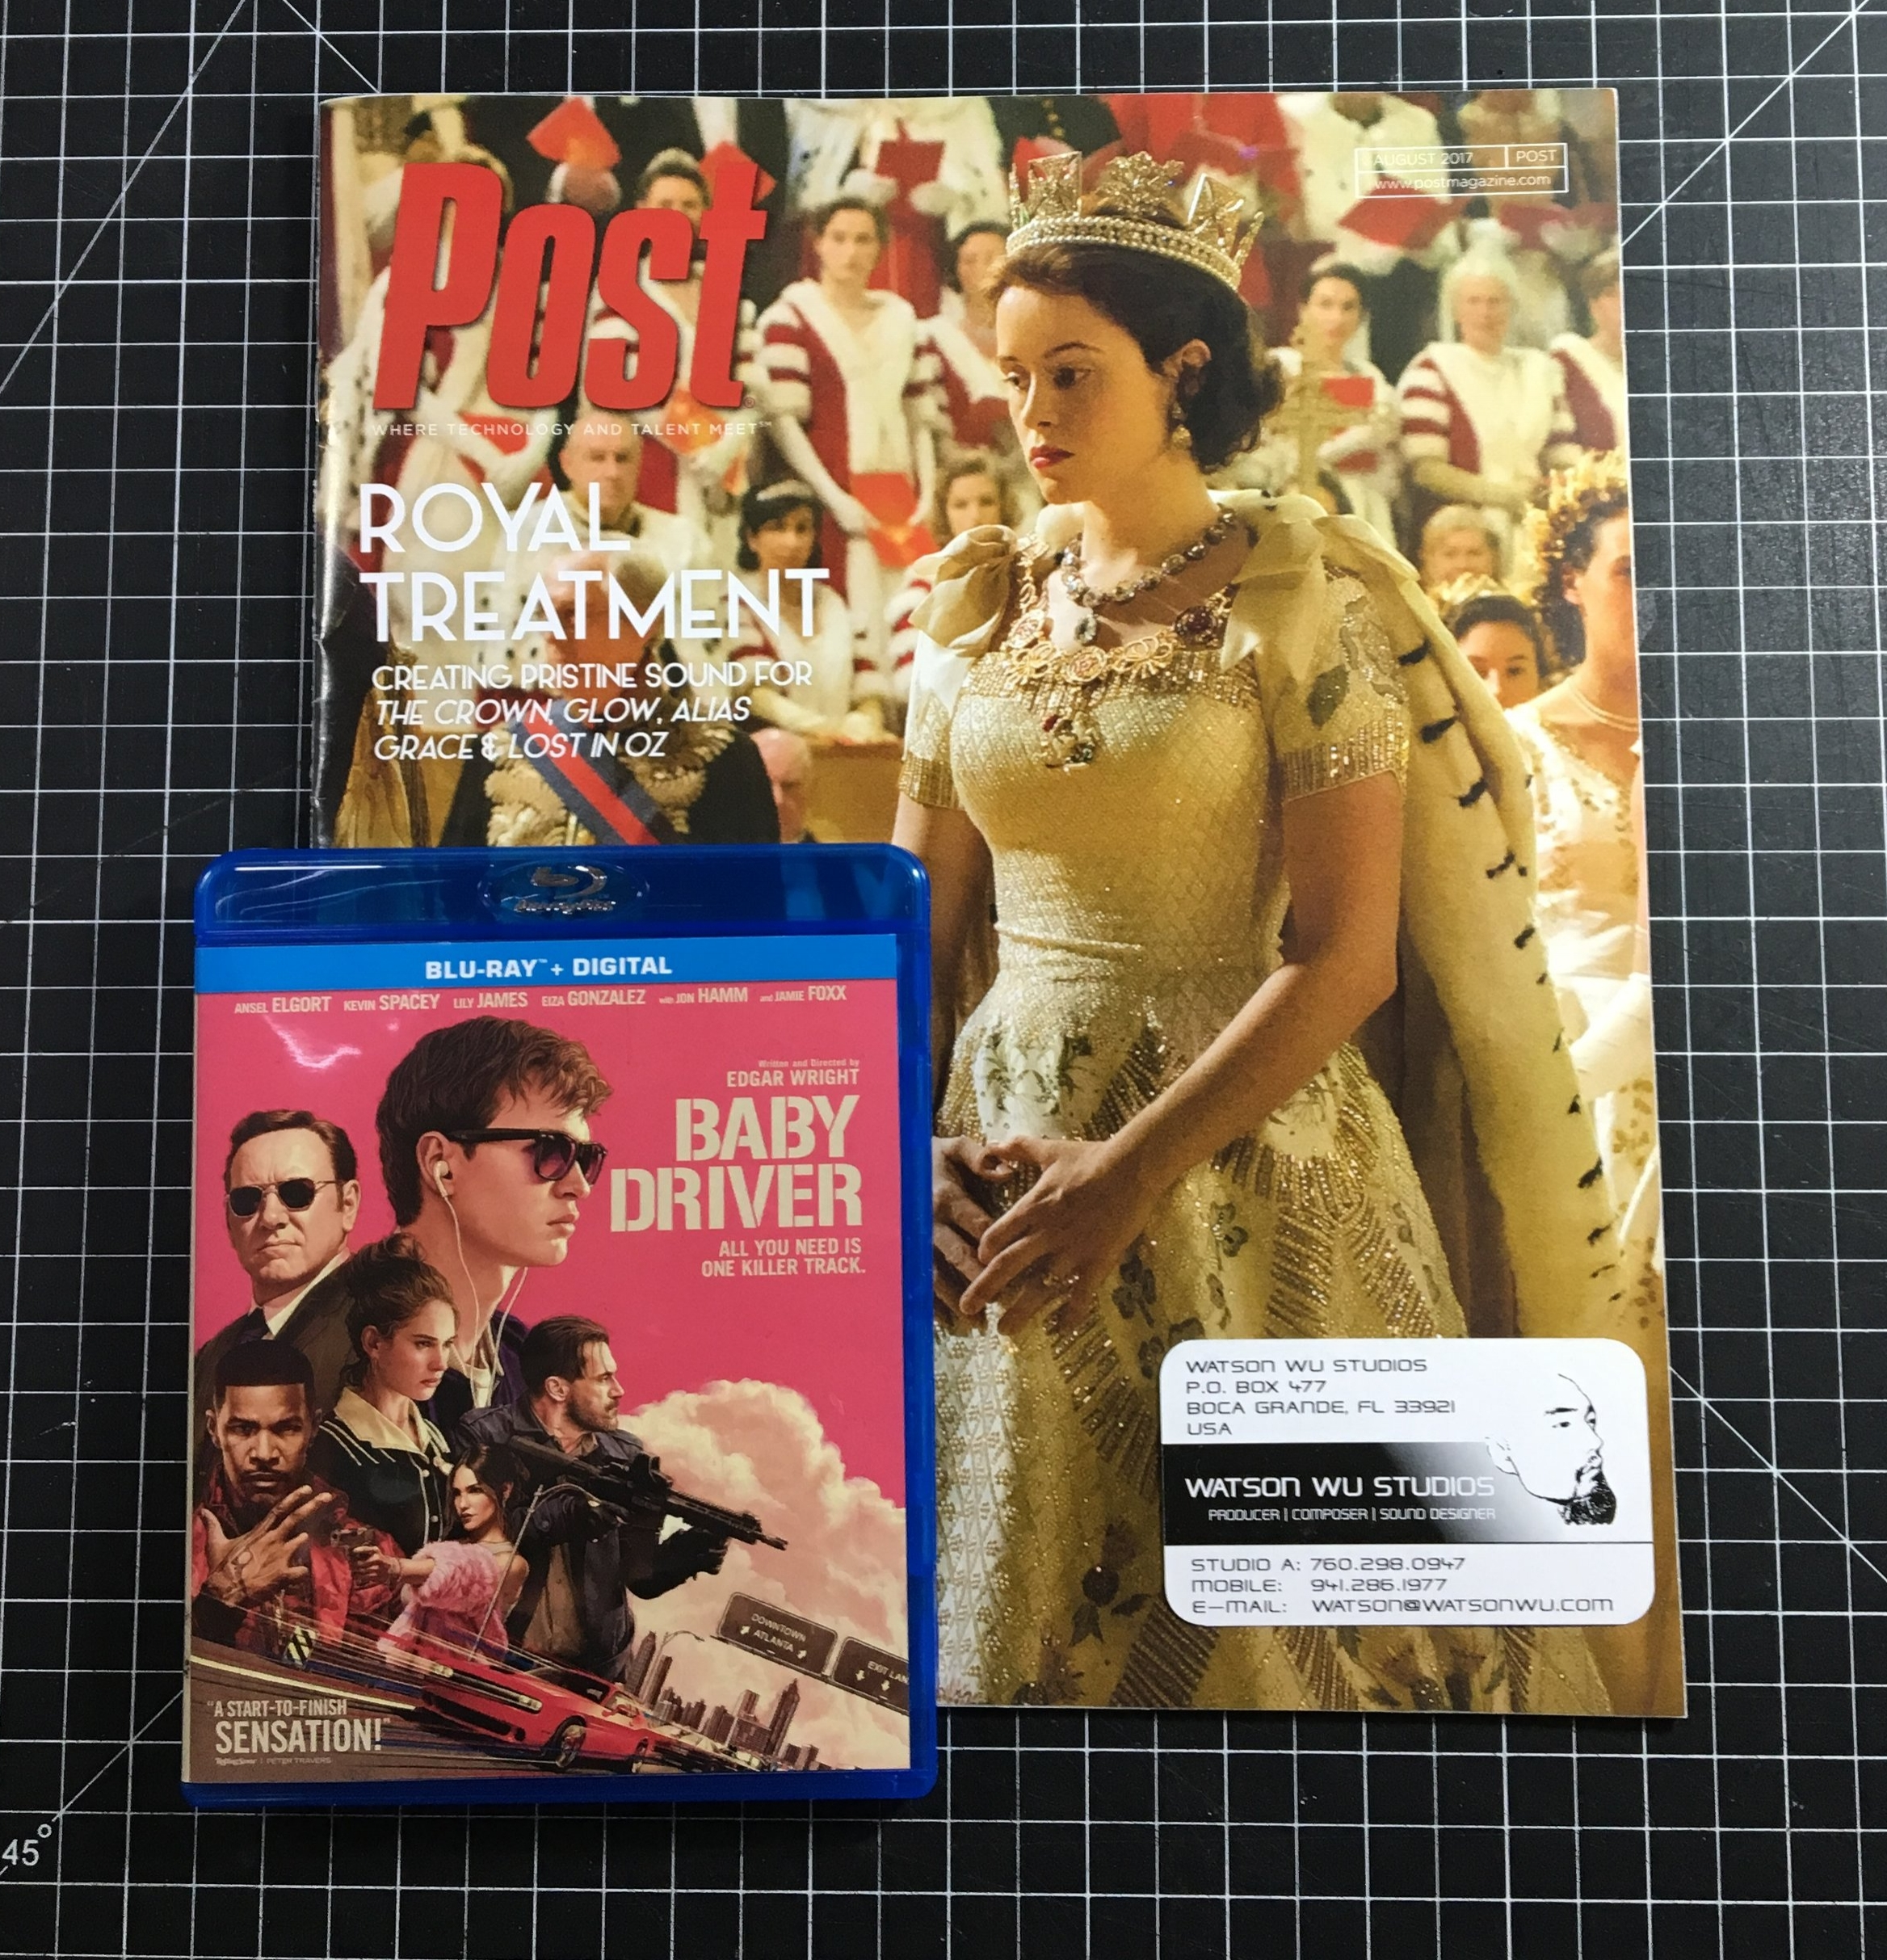 Post Mag 08.2017 Baby Driver Bluray IMG_9039.JPG